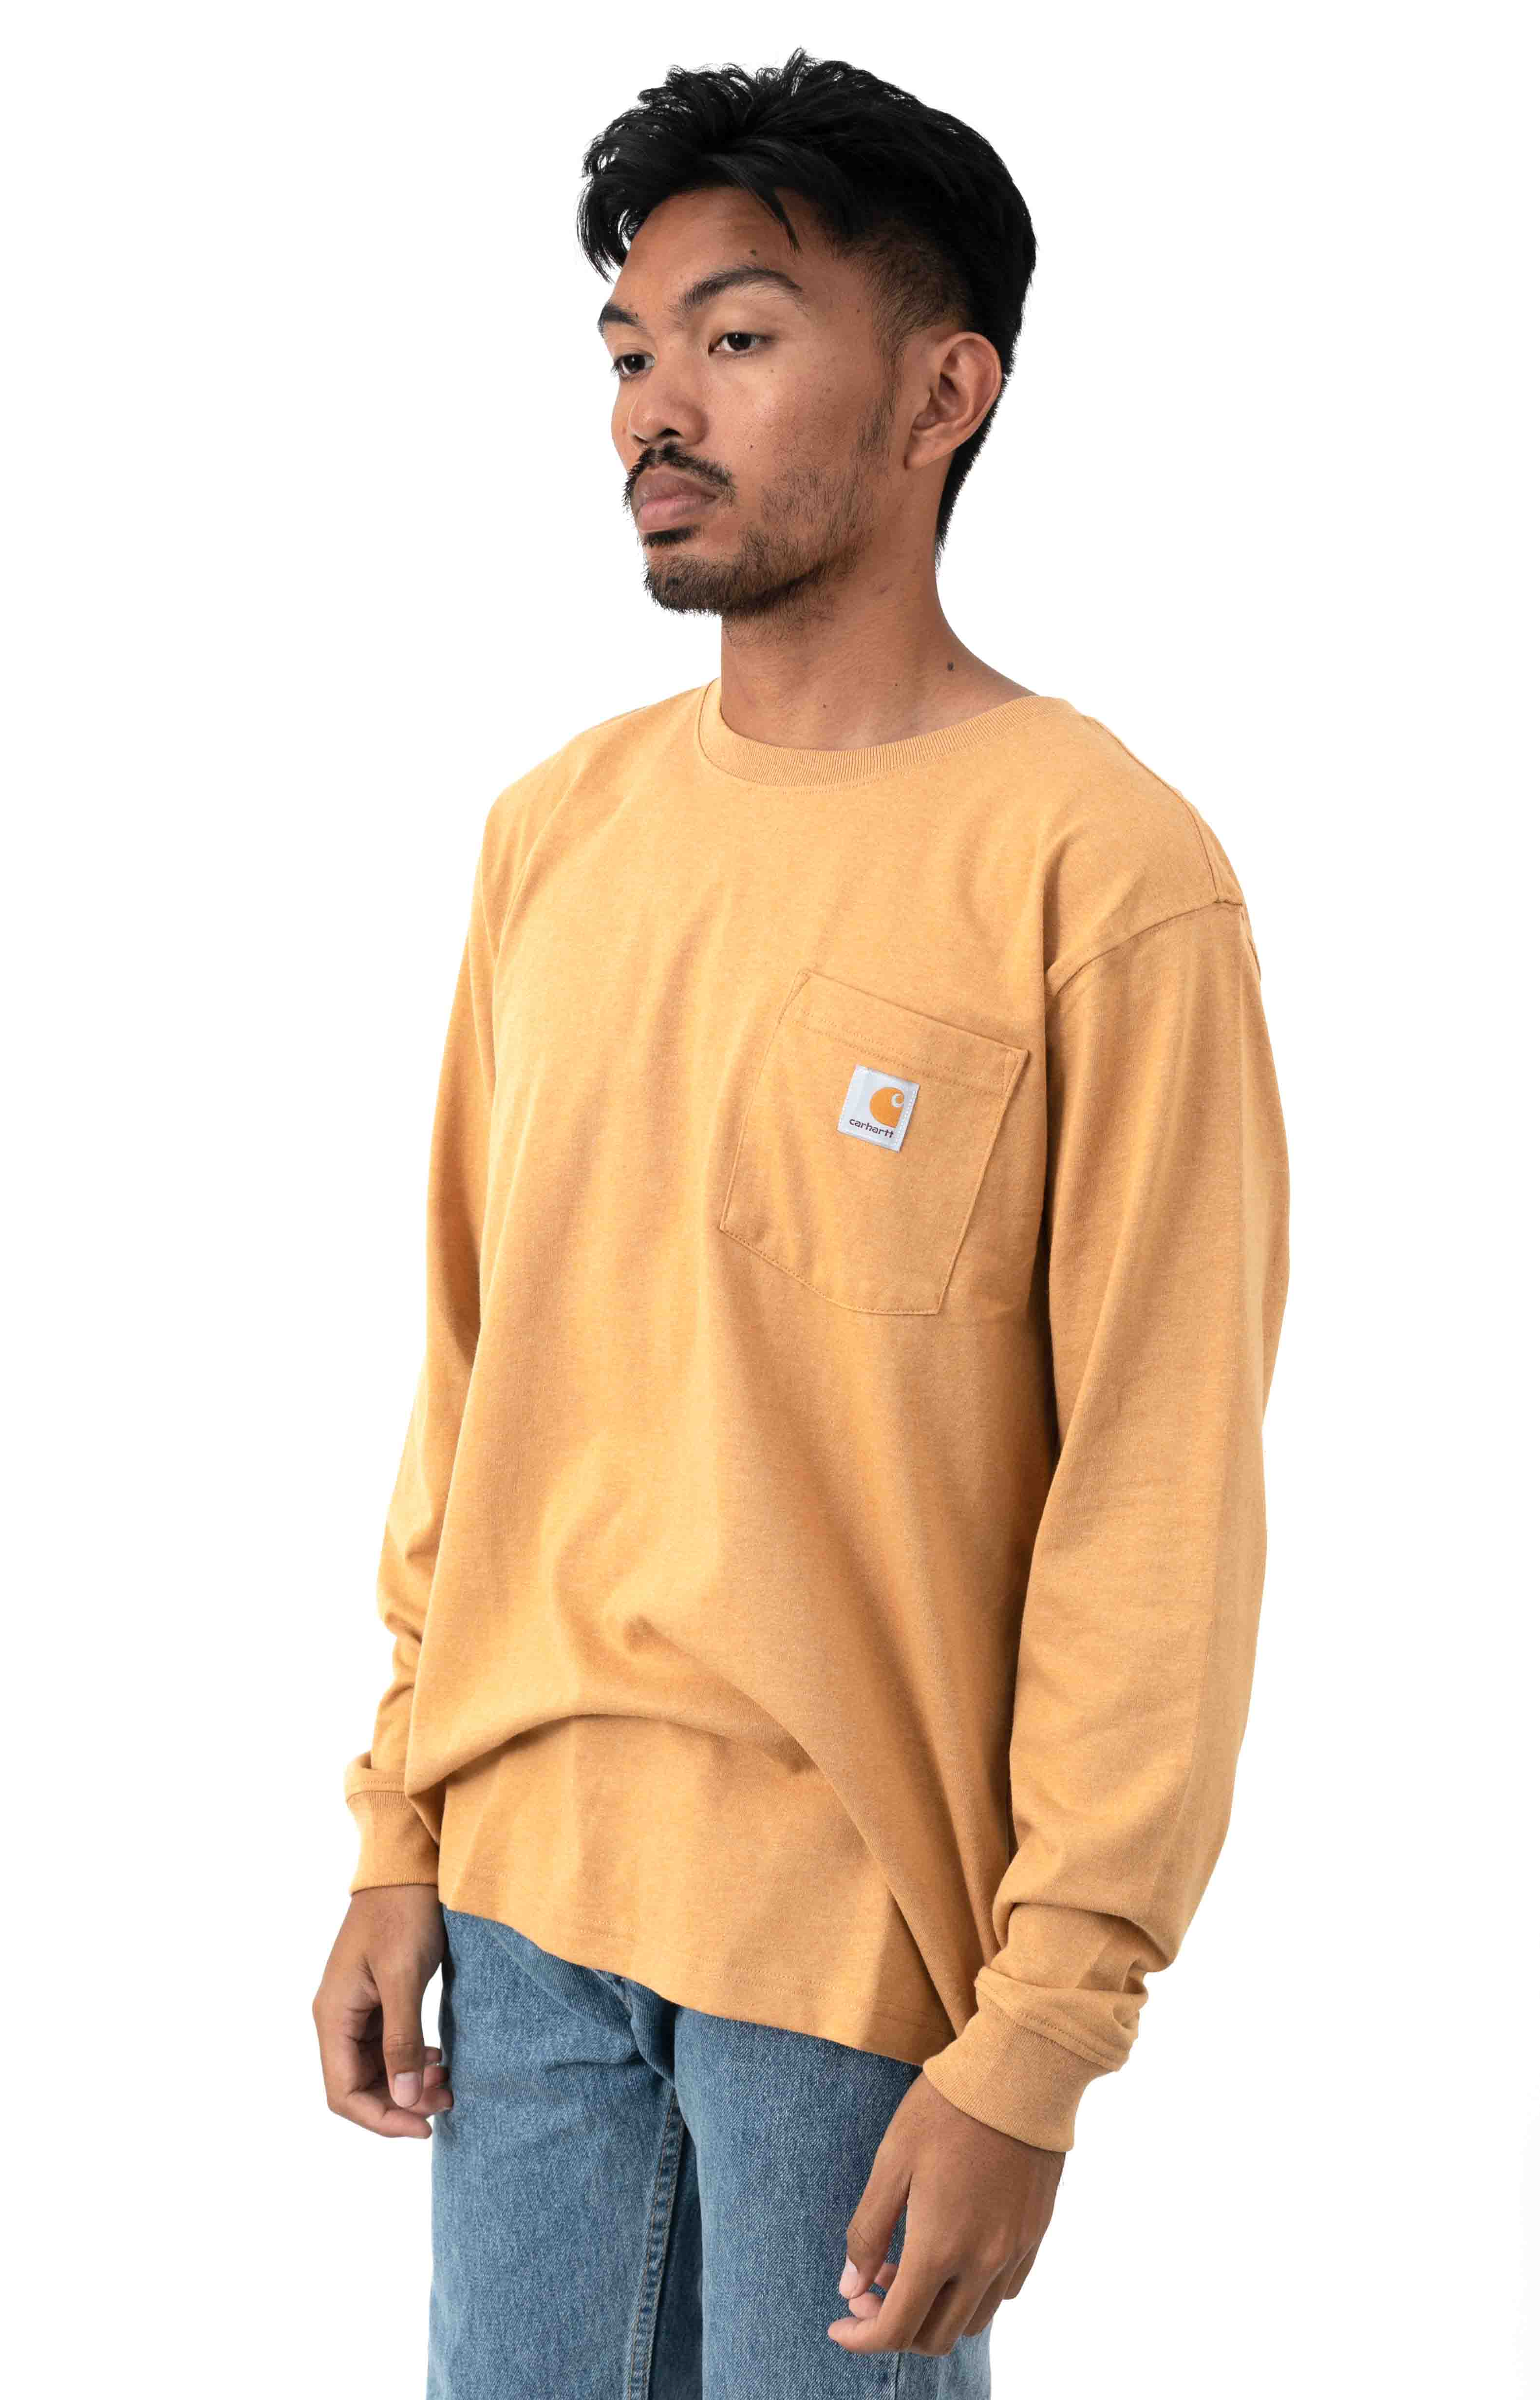 (104438) Relaxed Fit HW L/S Pocket Built For The Elements Graphic Shirt - Yellowstone Hthr 3